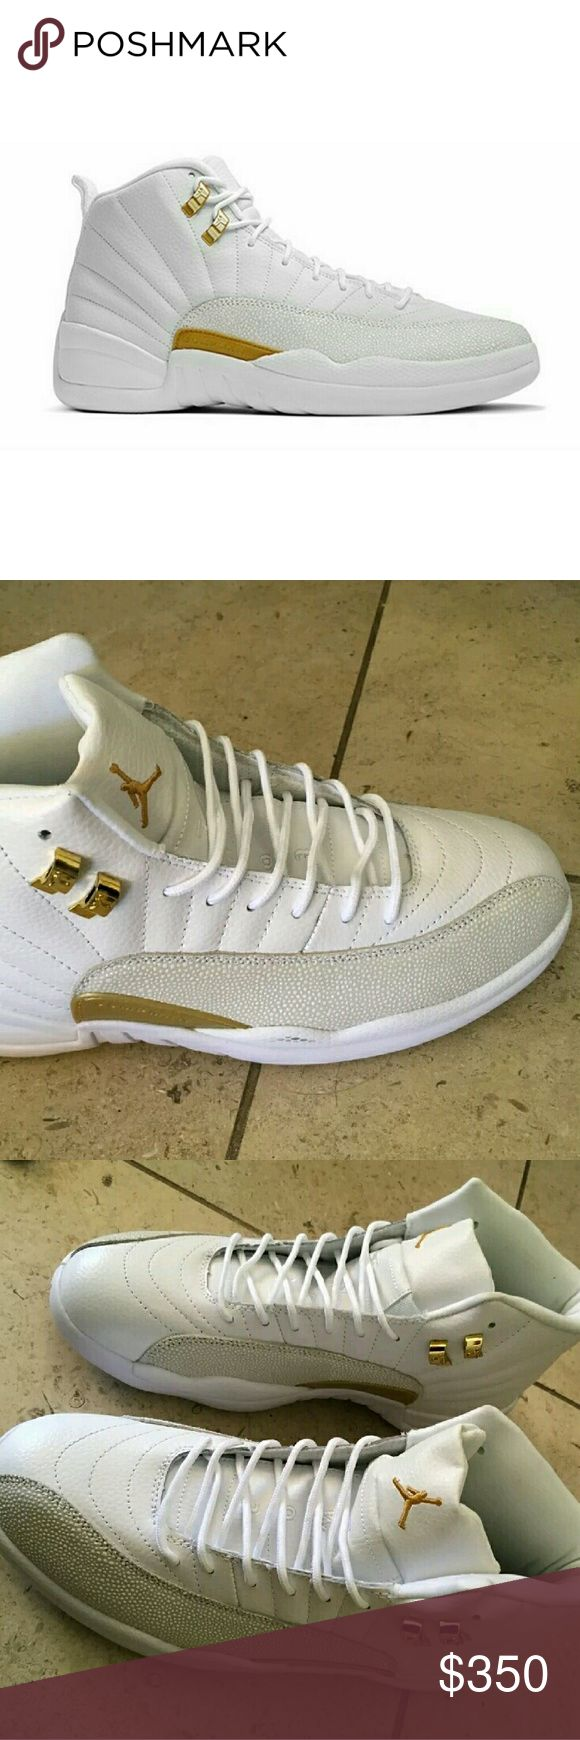 "*EXCLUSIVE* Jordan Retro 12 ""OVO"" White We sell them new, they also come with box.  THESE ARE 50% UA. NO ONE SELLS THESE 100% AUTHENTIC We sell them less, and still great quality! Mens & Womens Sizes SERIOUS BUSINESS ONLY PLEASE!  P a y p a l is the only option we use. CONTACT BEFORE YOU PURCHASE PLEASE! Jordan Shoes Athletic Shoes"